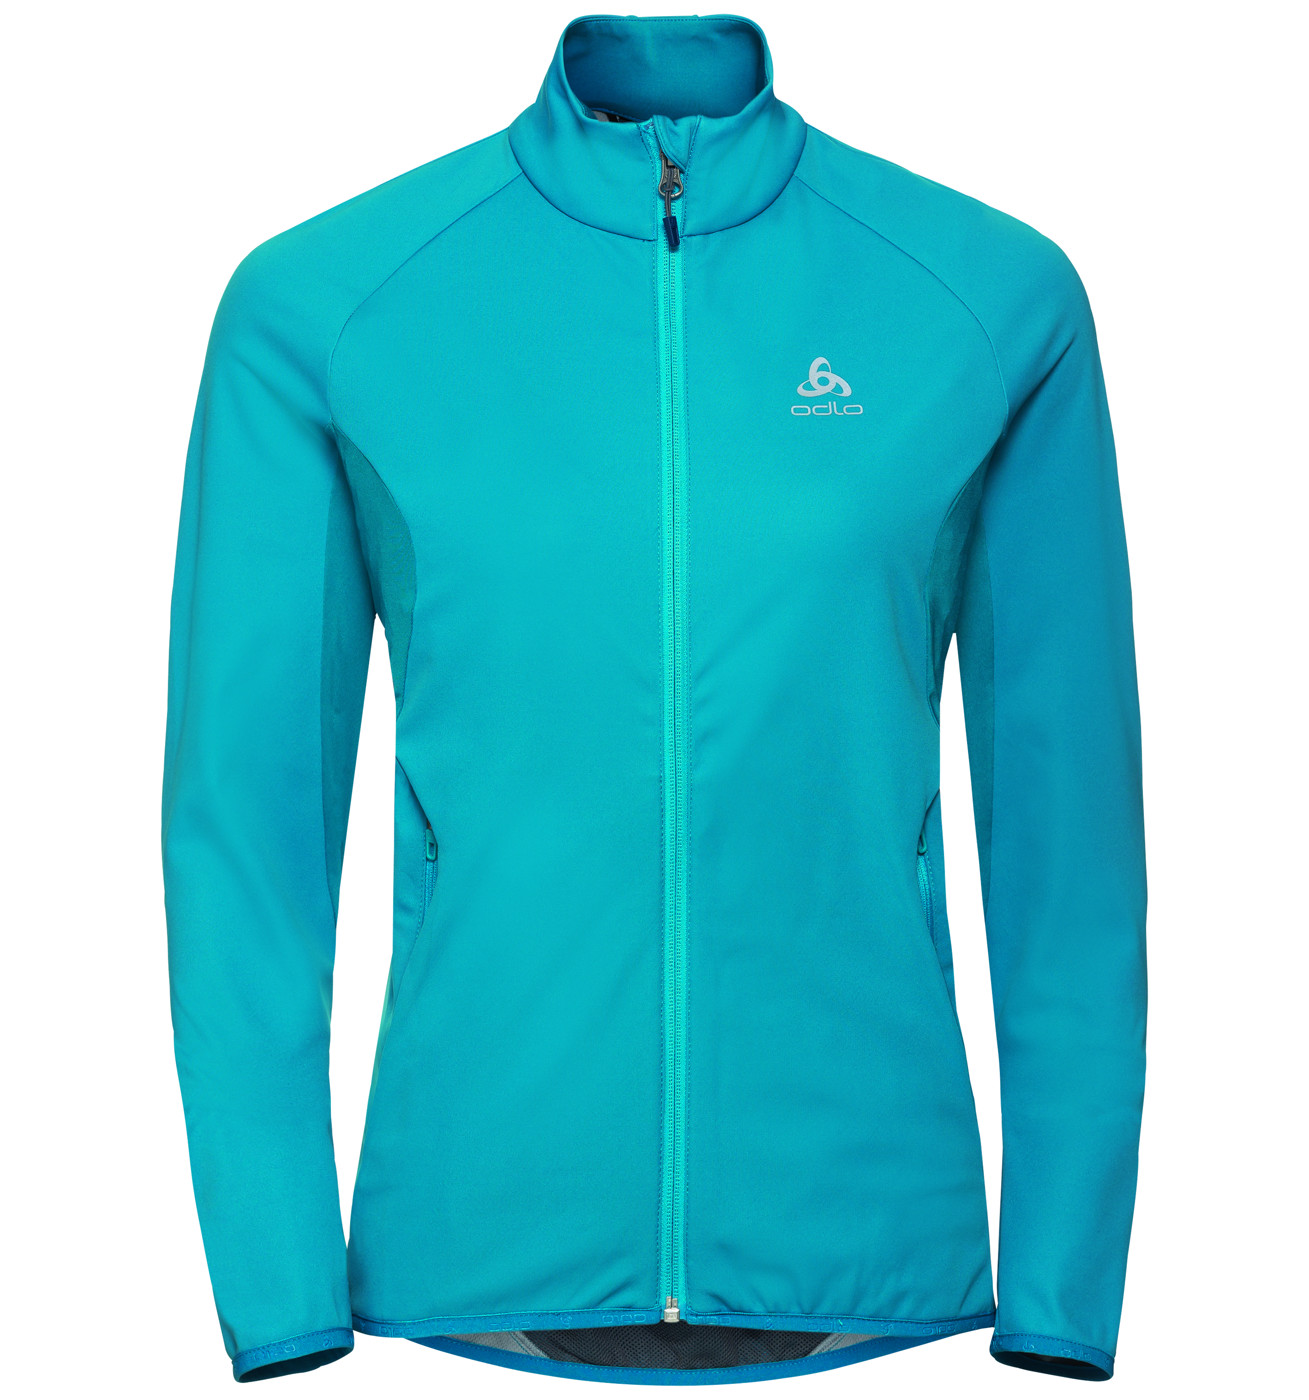 ODLO Jacket AEOLUS ELEMENT - Damen